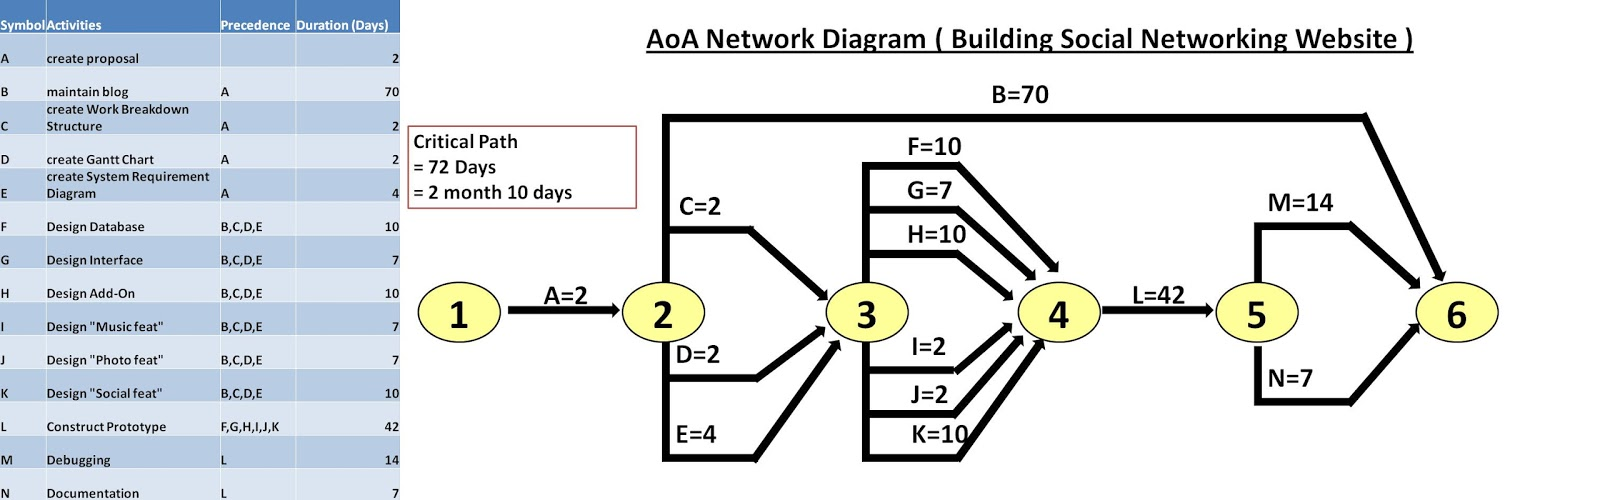 hight resolution of aoa network diagram building social networking website ver 1